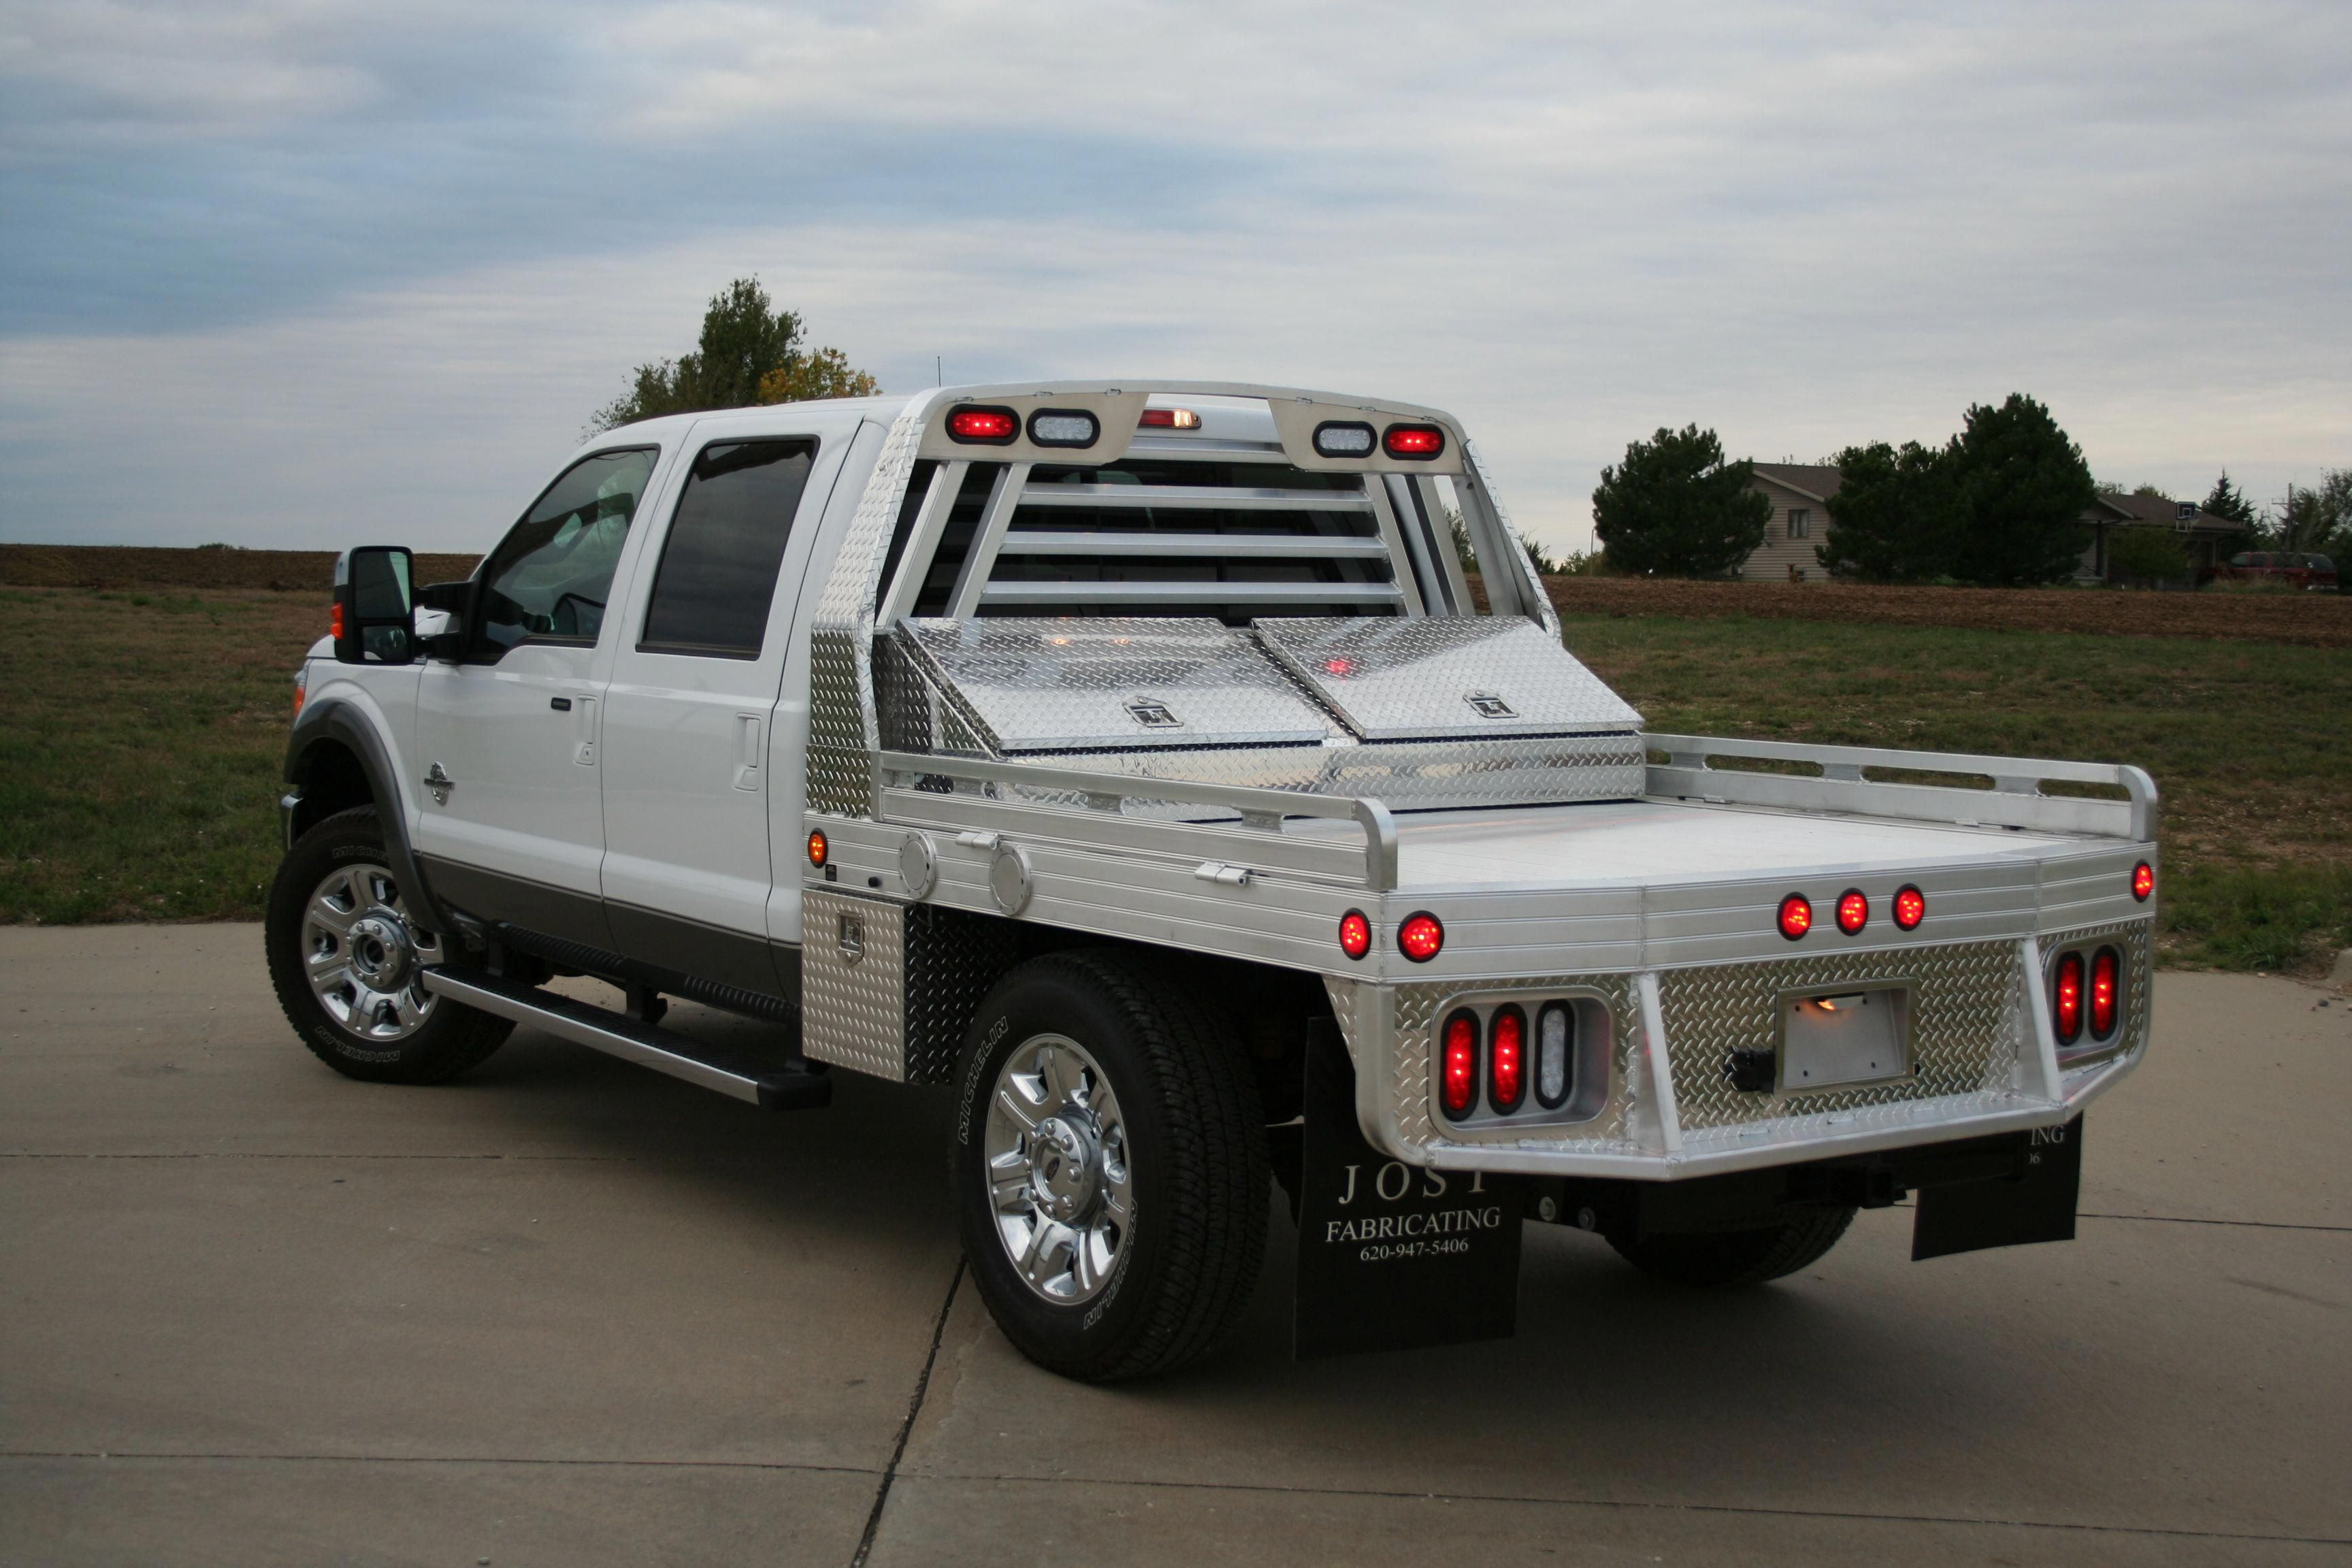 Figure out even more details on pickup trucks. Browse